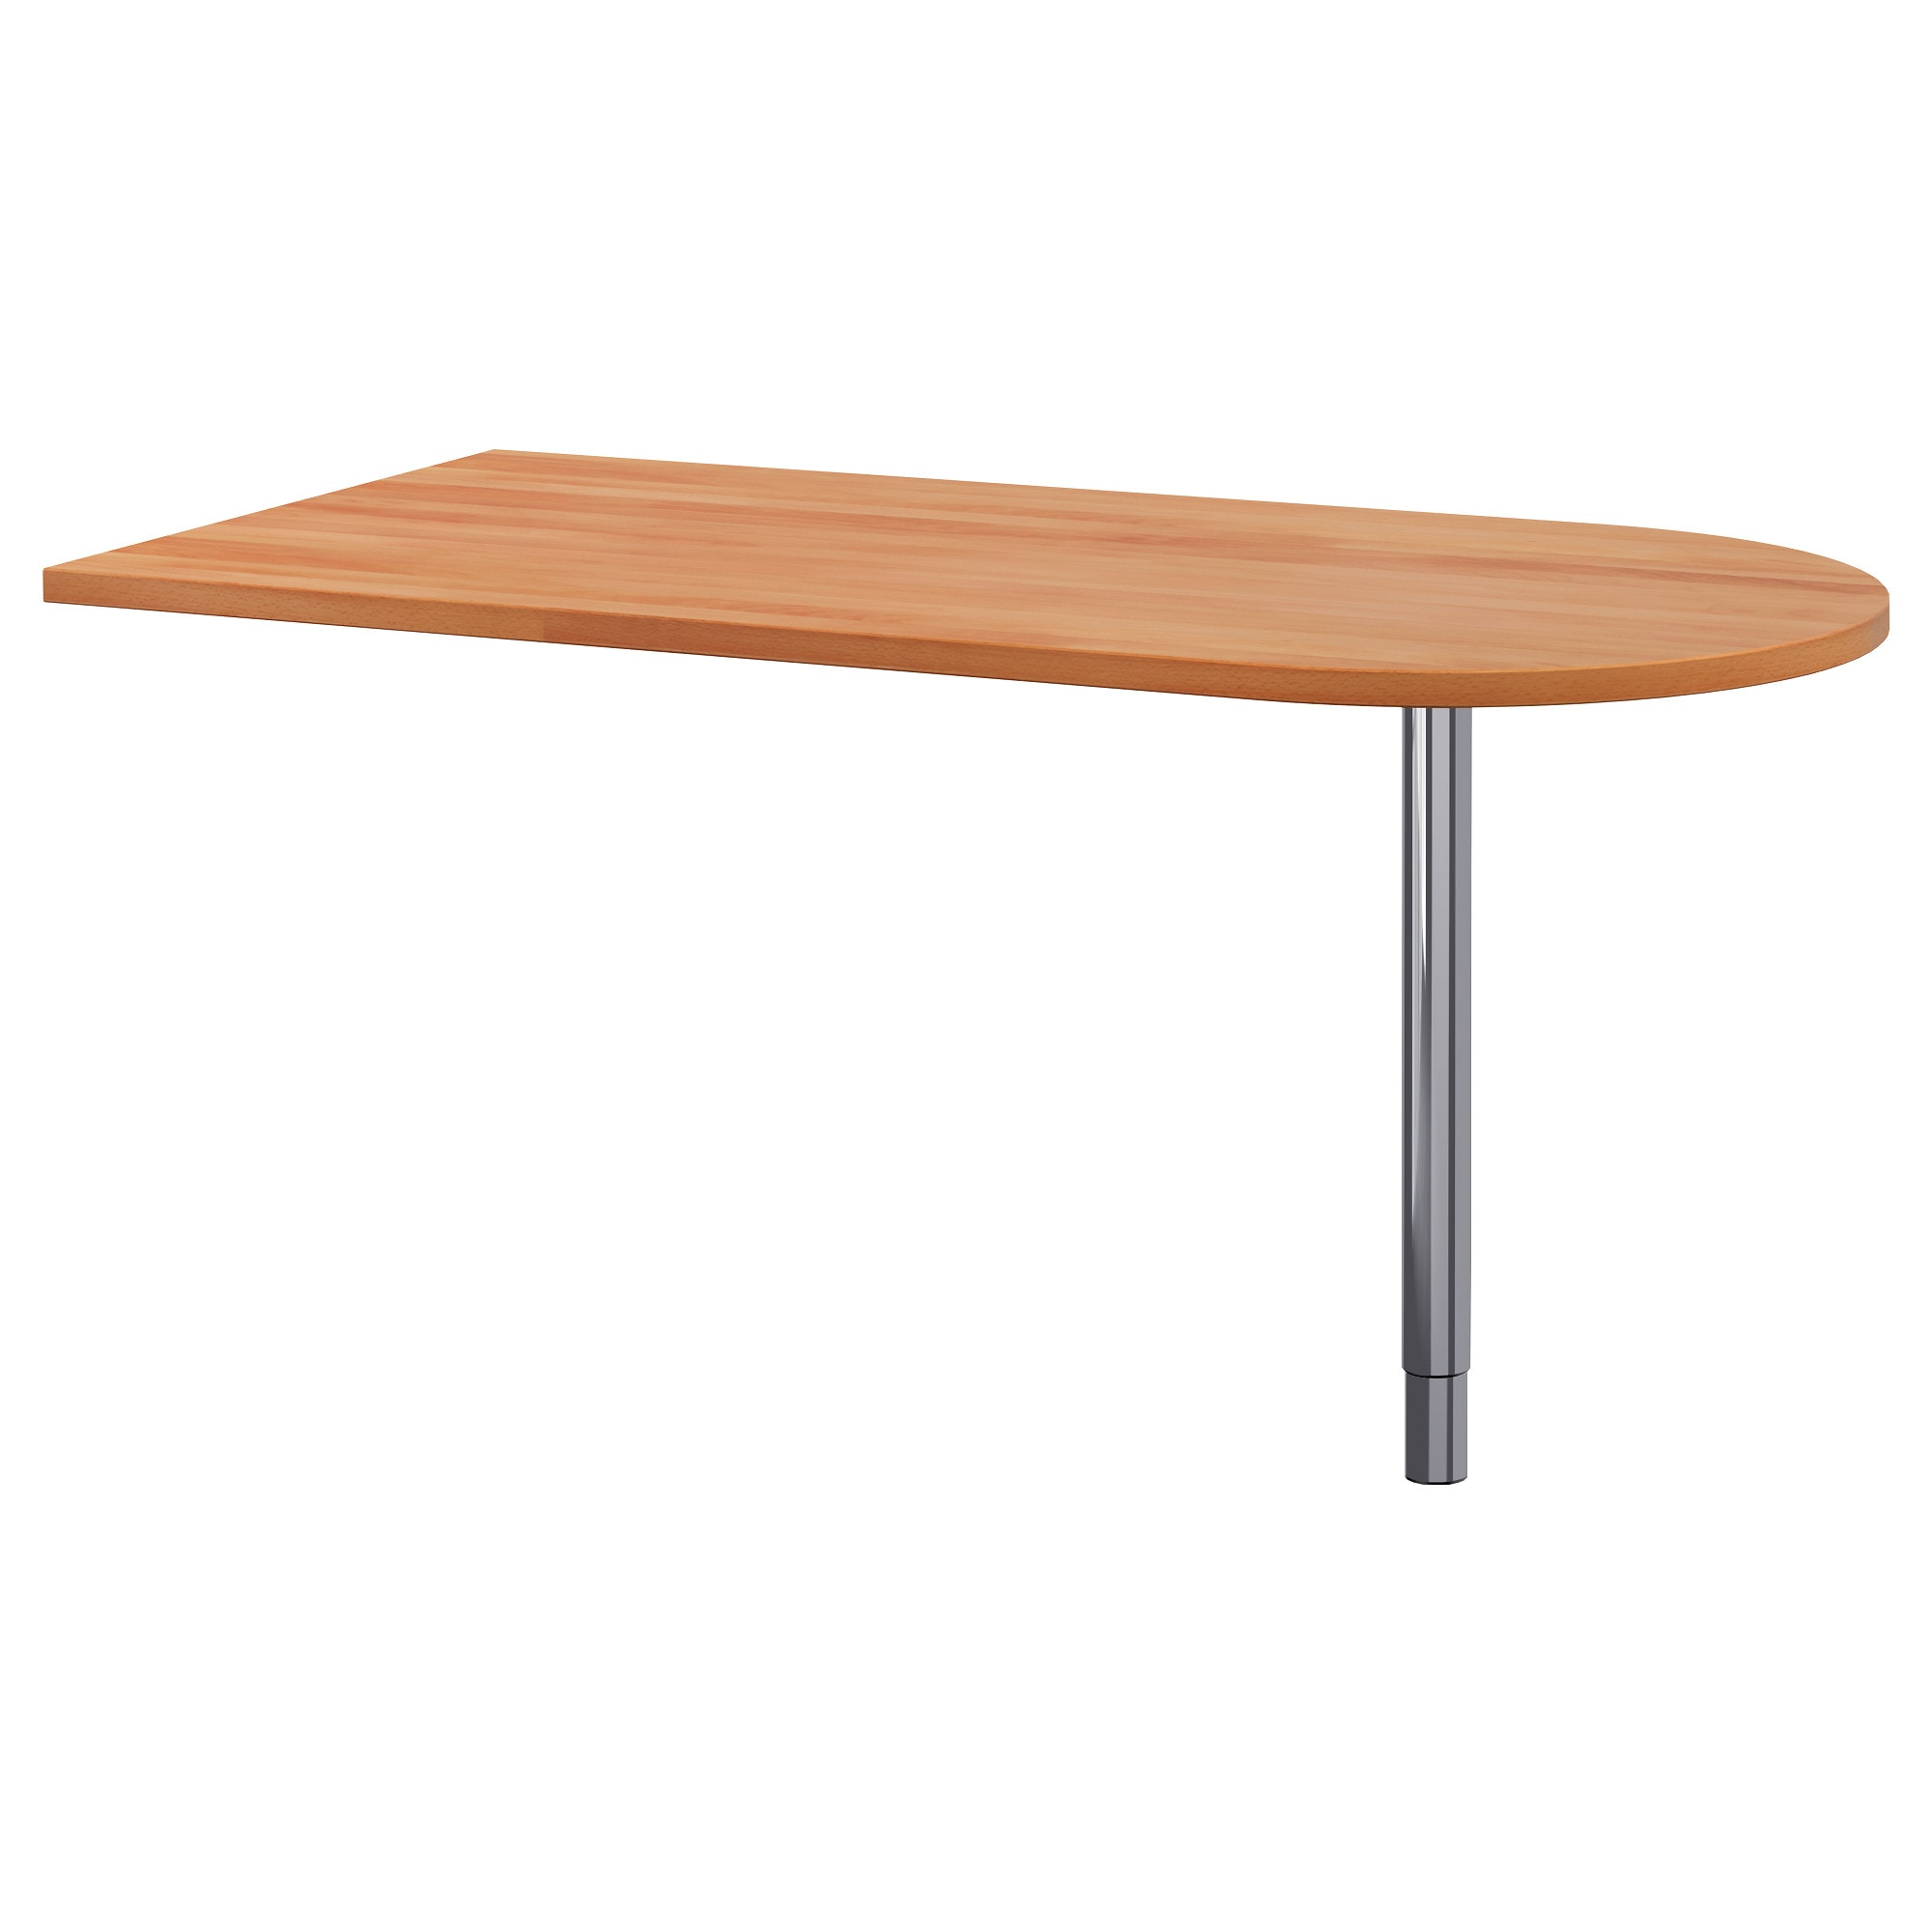 Table hauteur comptoir ikea for Table de fusion ikea